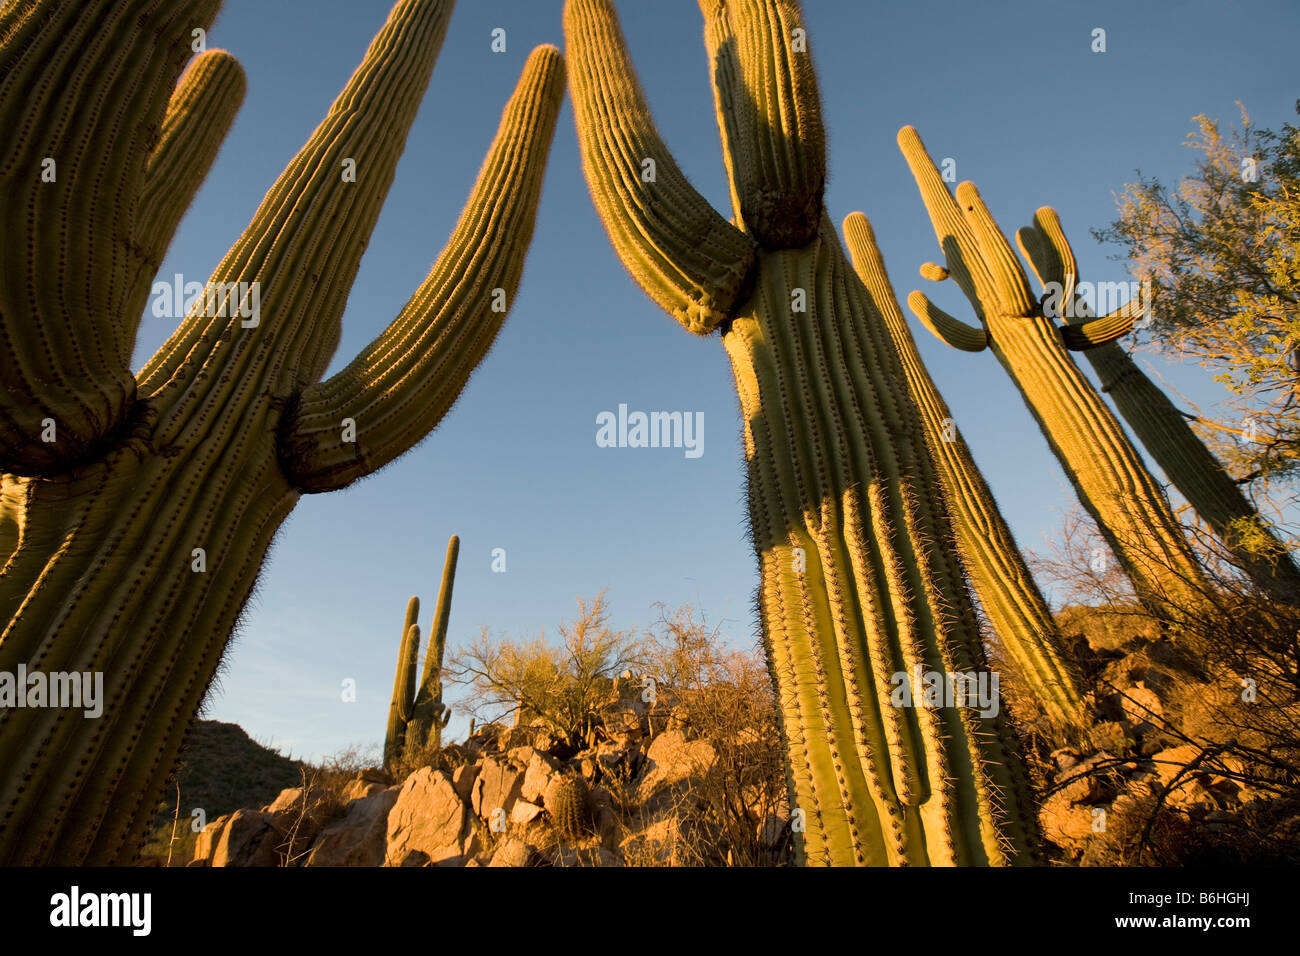 Giant Saguaros Saguaro National Park West Tucson Arizona - Stock Image